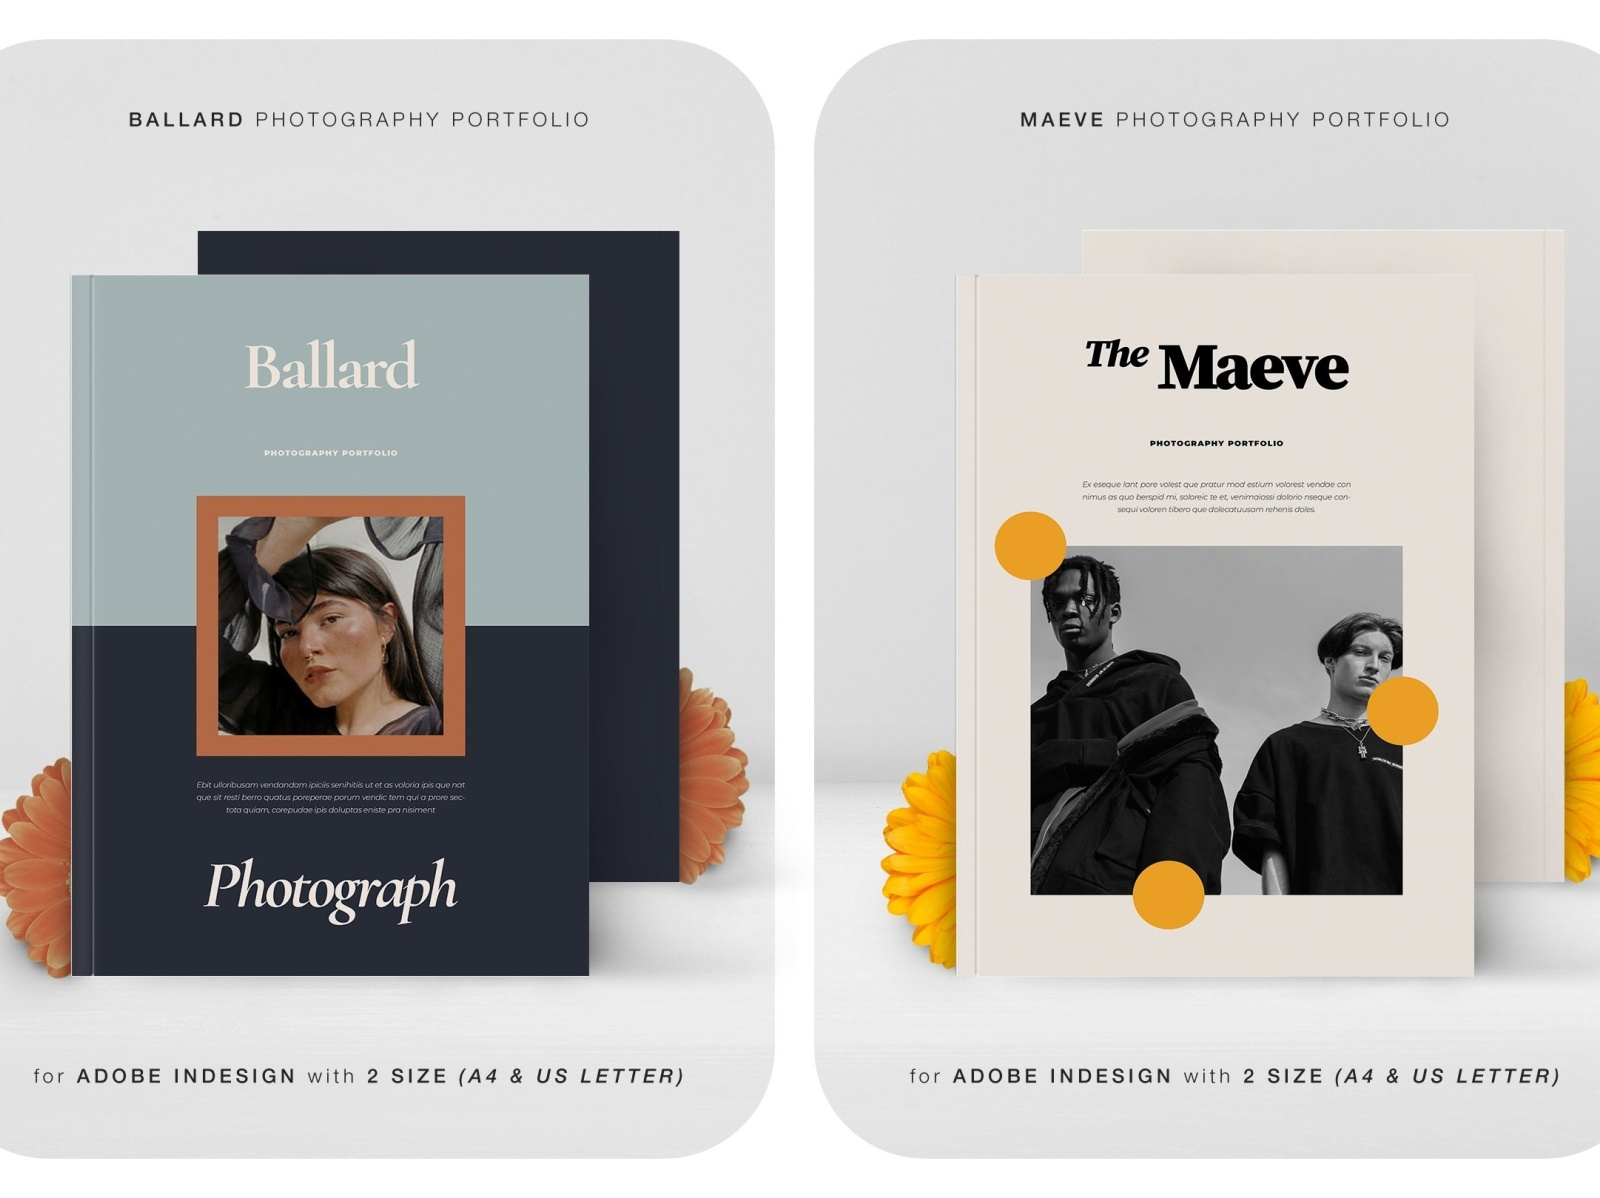 Duo Pack Photography Portfolio 01 By Brochure Design On Dribbble